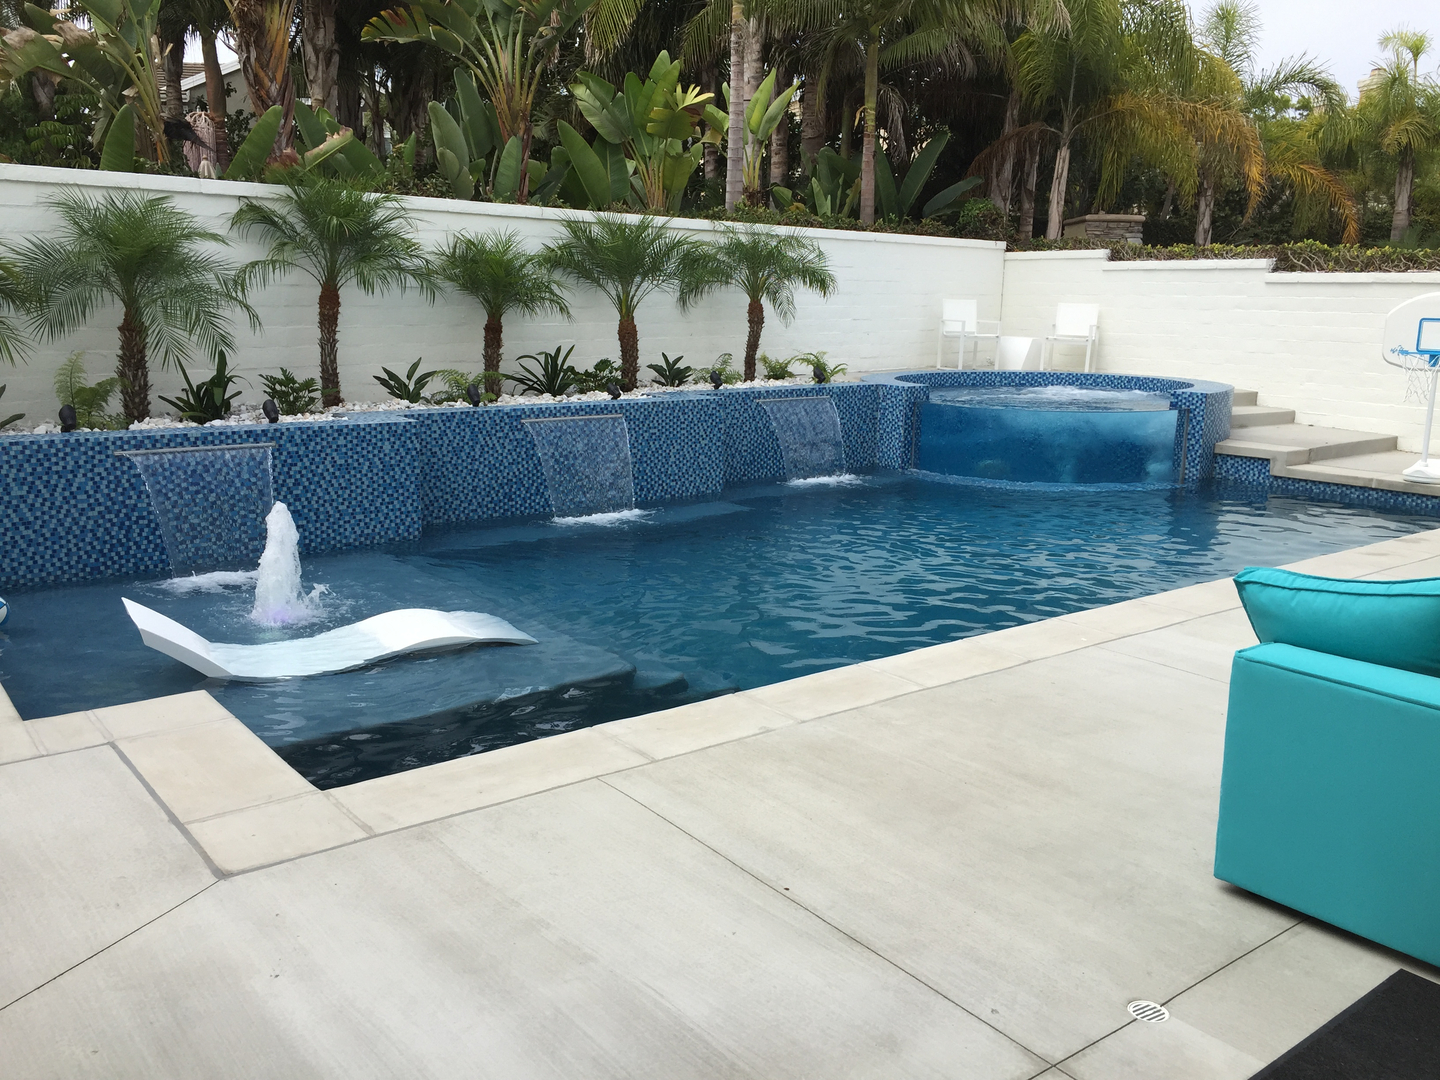 Pool modern  Meridian Custom Pools - Swimming Pool Construction, Modern And ...